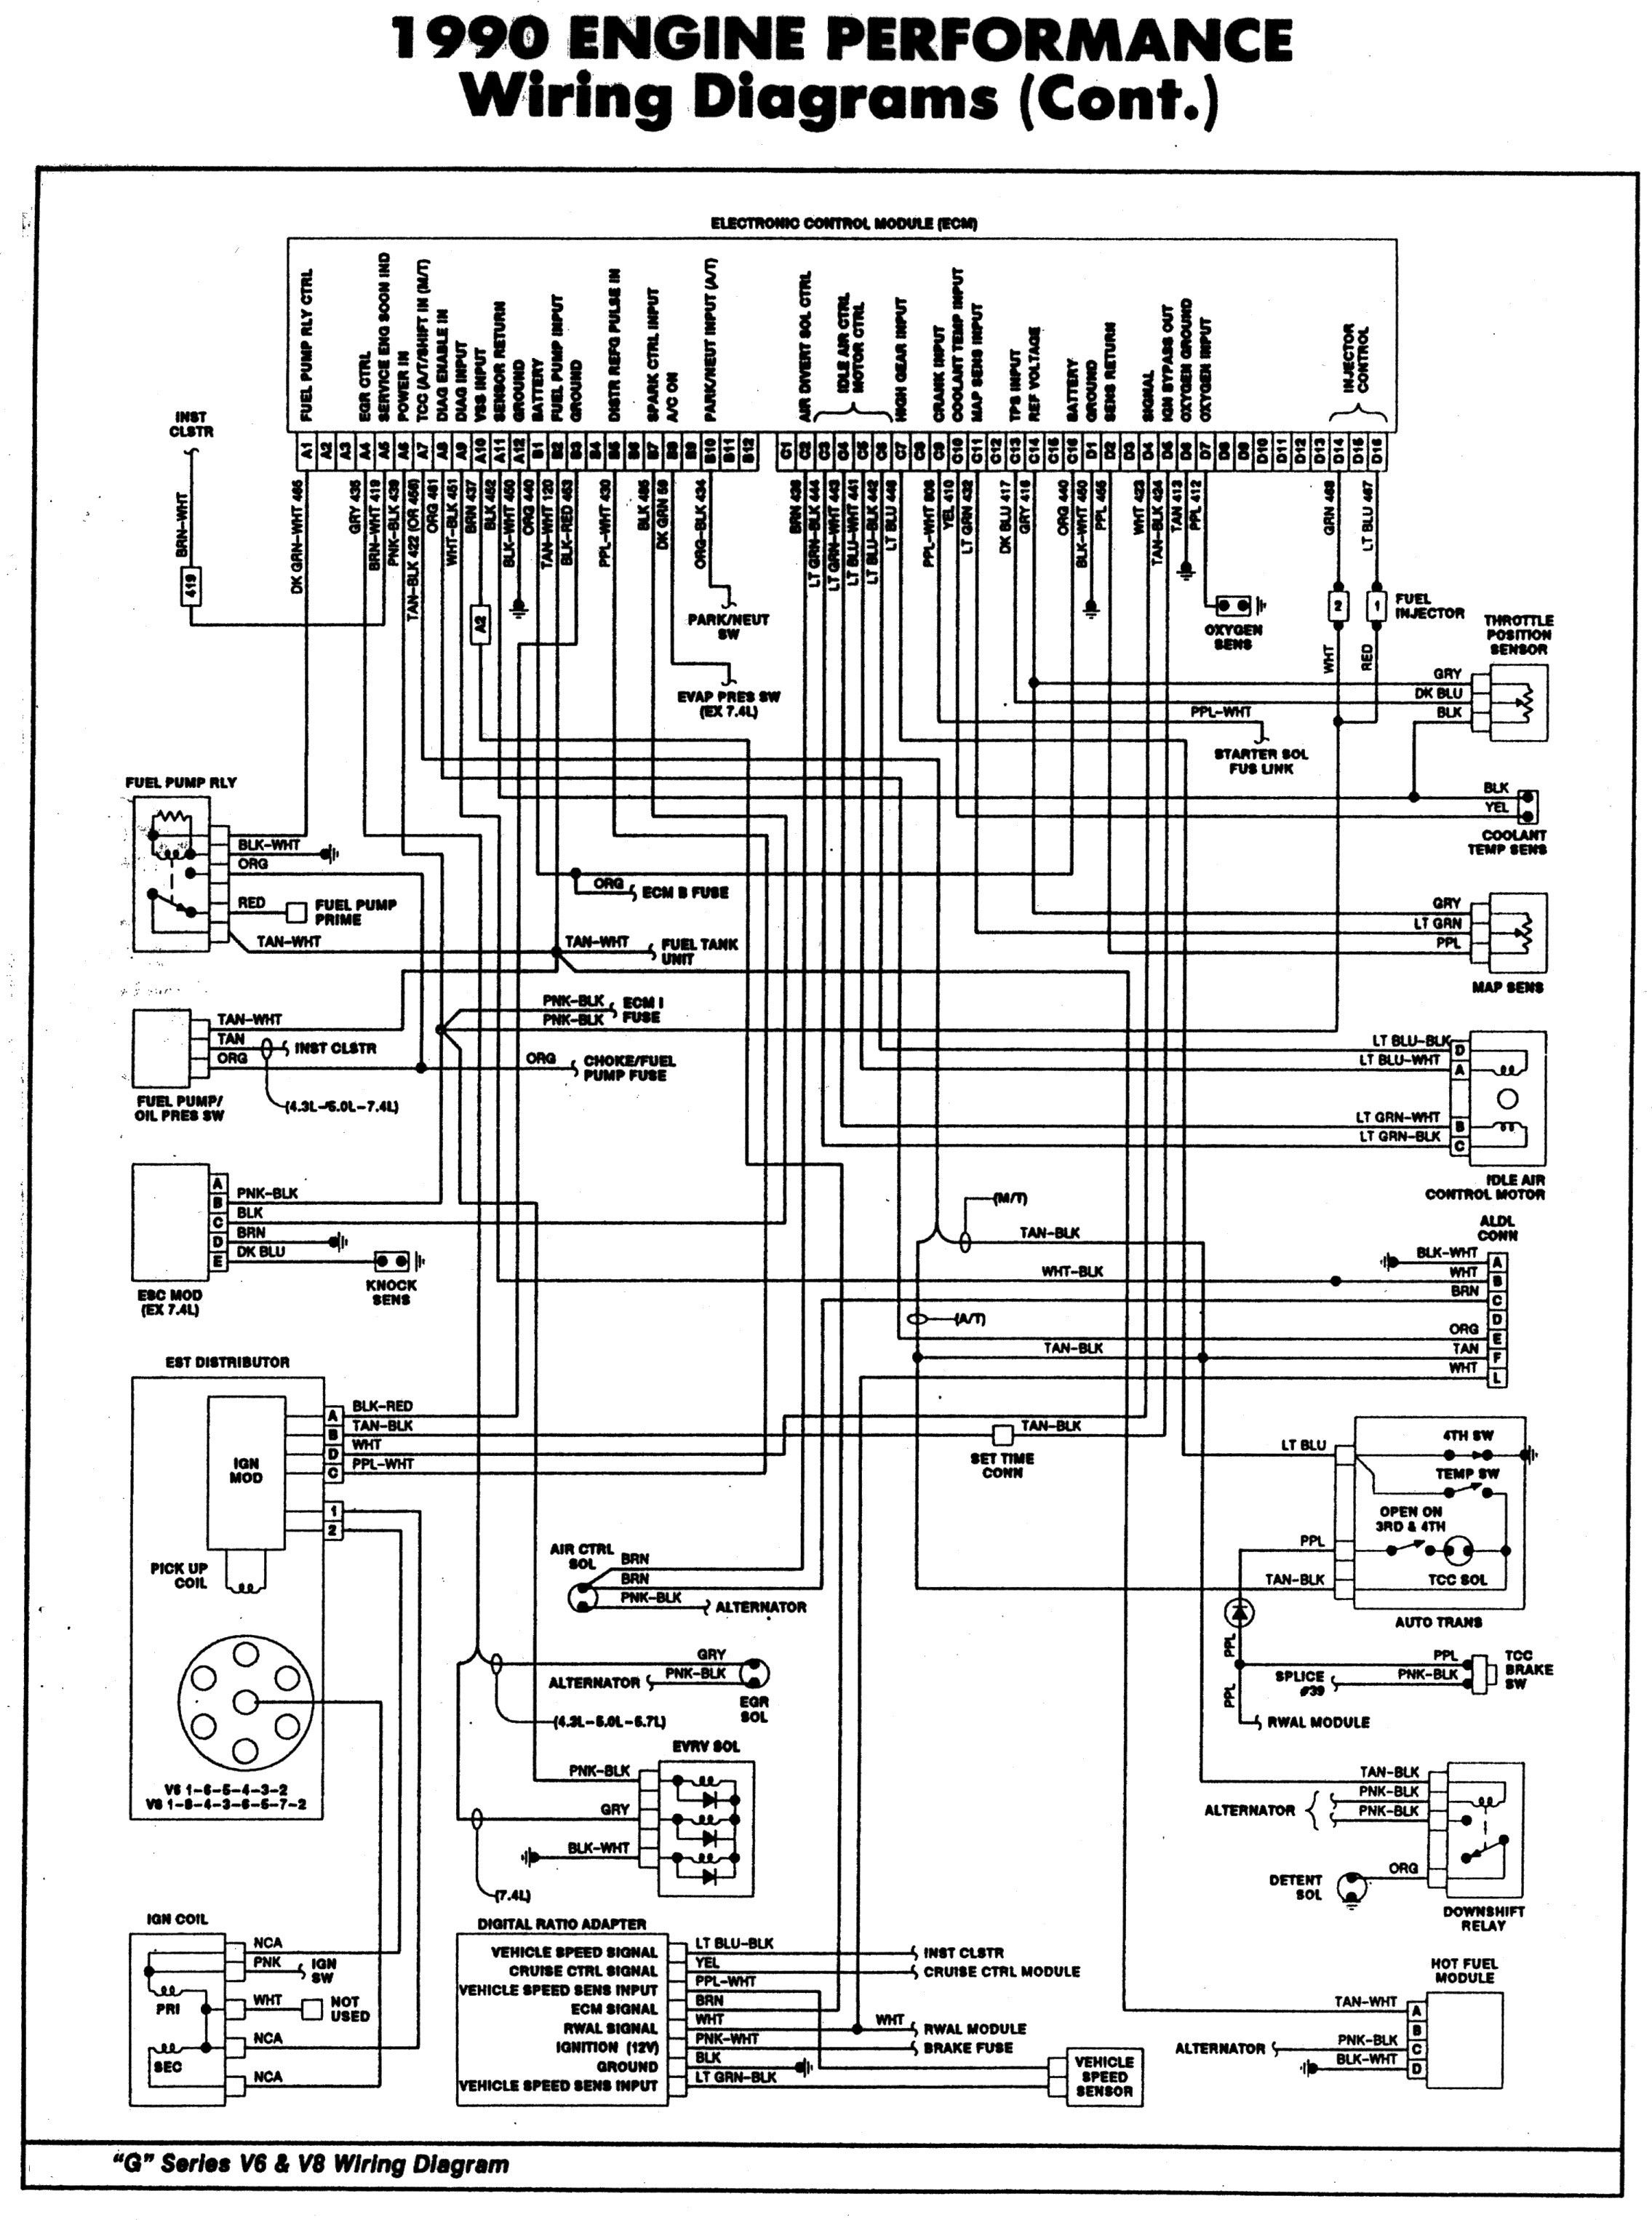 1994 Chevy Truck Wiring Diagram Free Inspirational 2000 Chevrolet